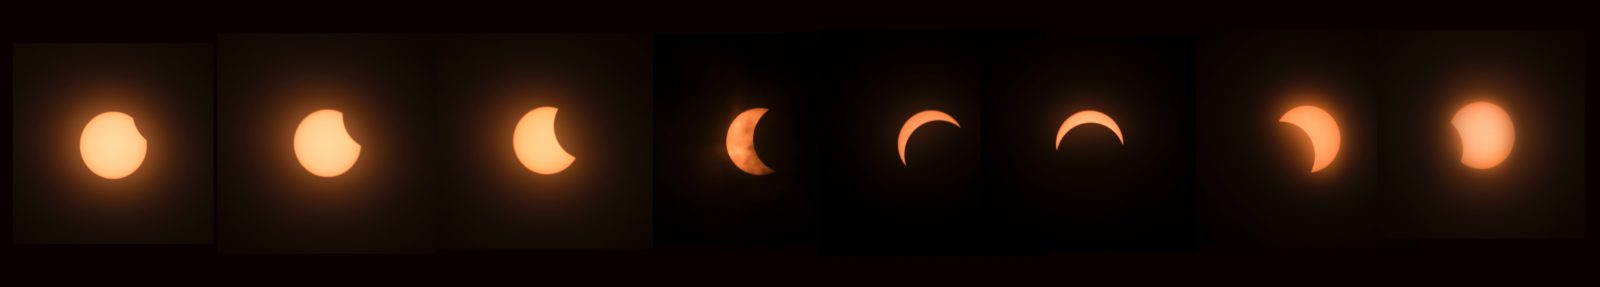 Eclipse over Wisconsin